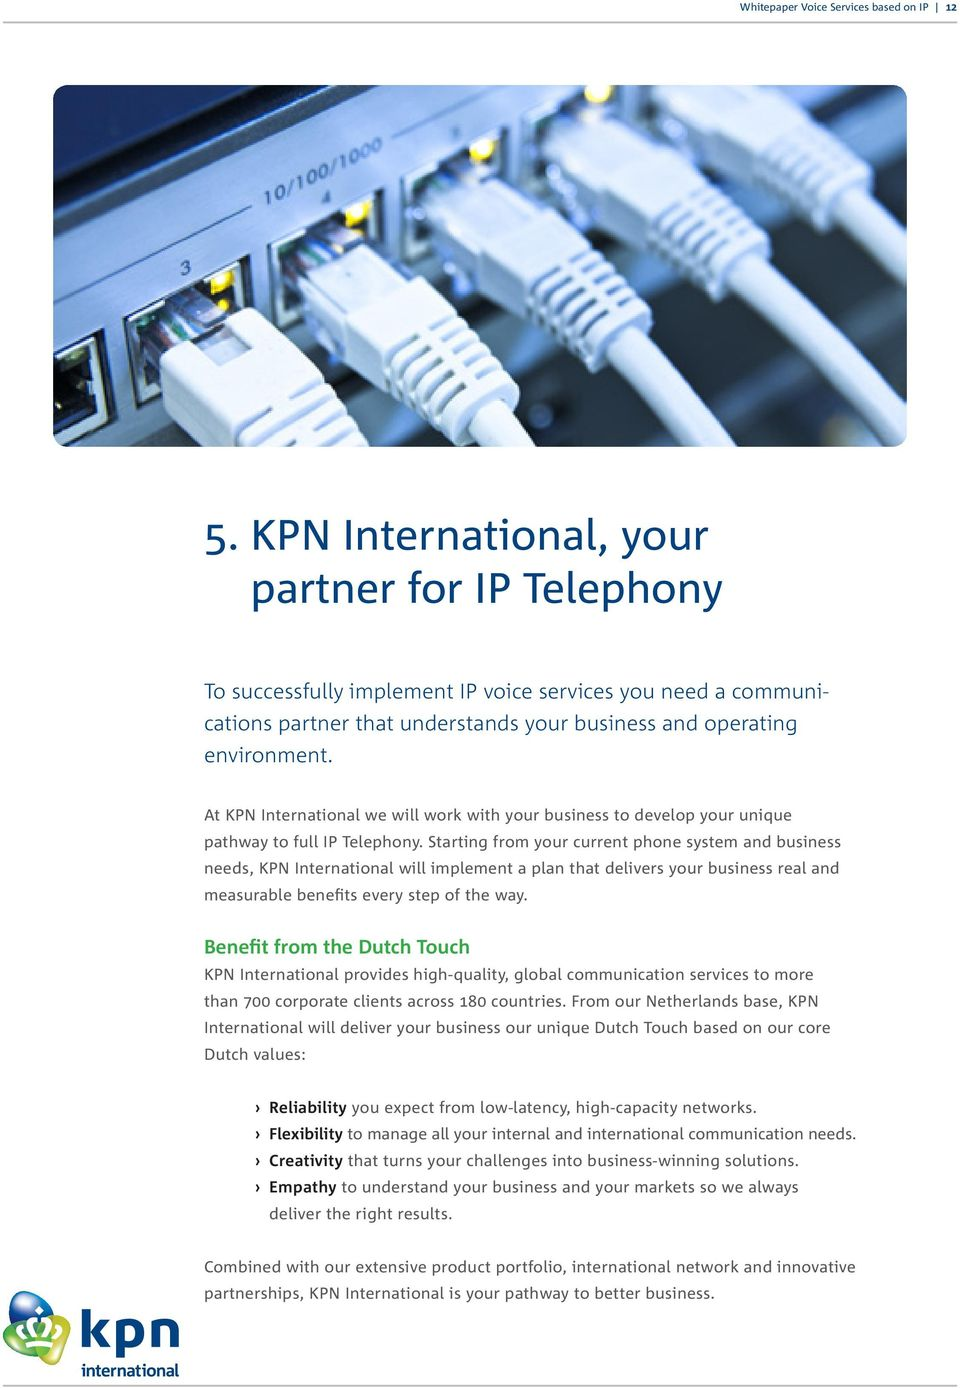 At KPN International we will work with your business to develop your unique pathway to full IP Telephony.